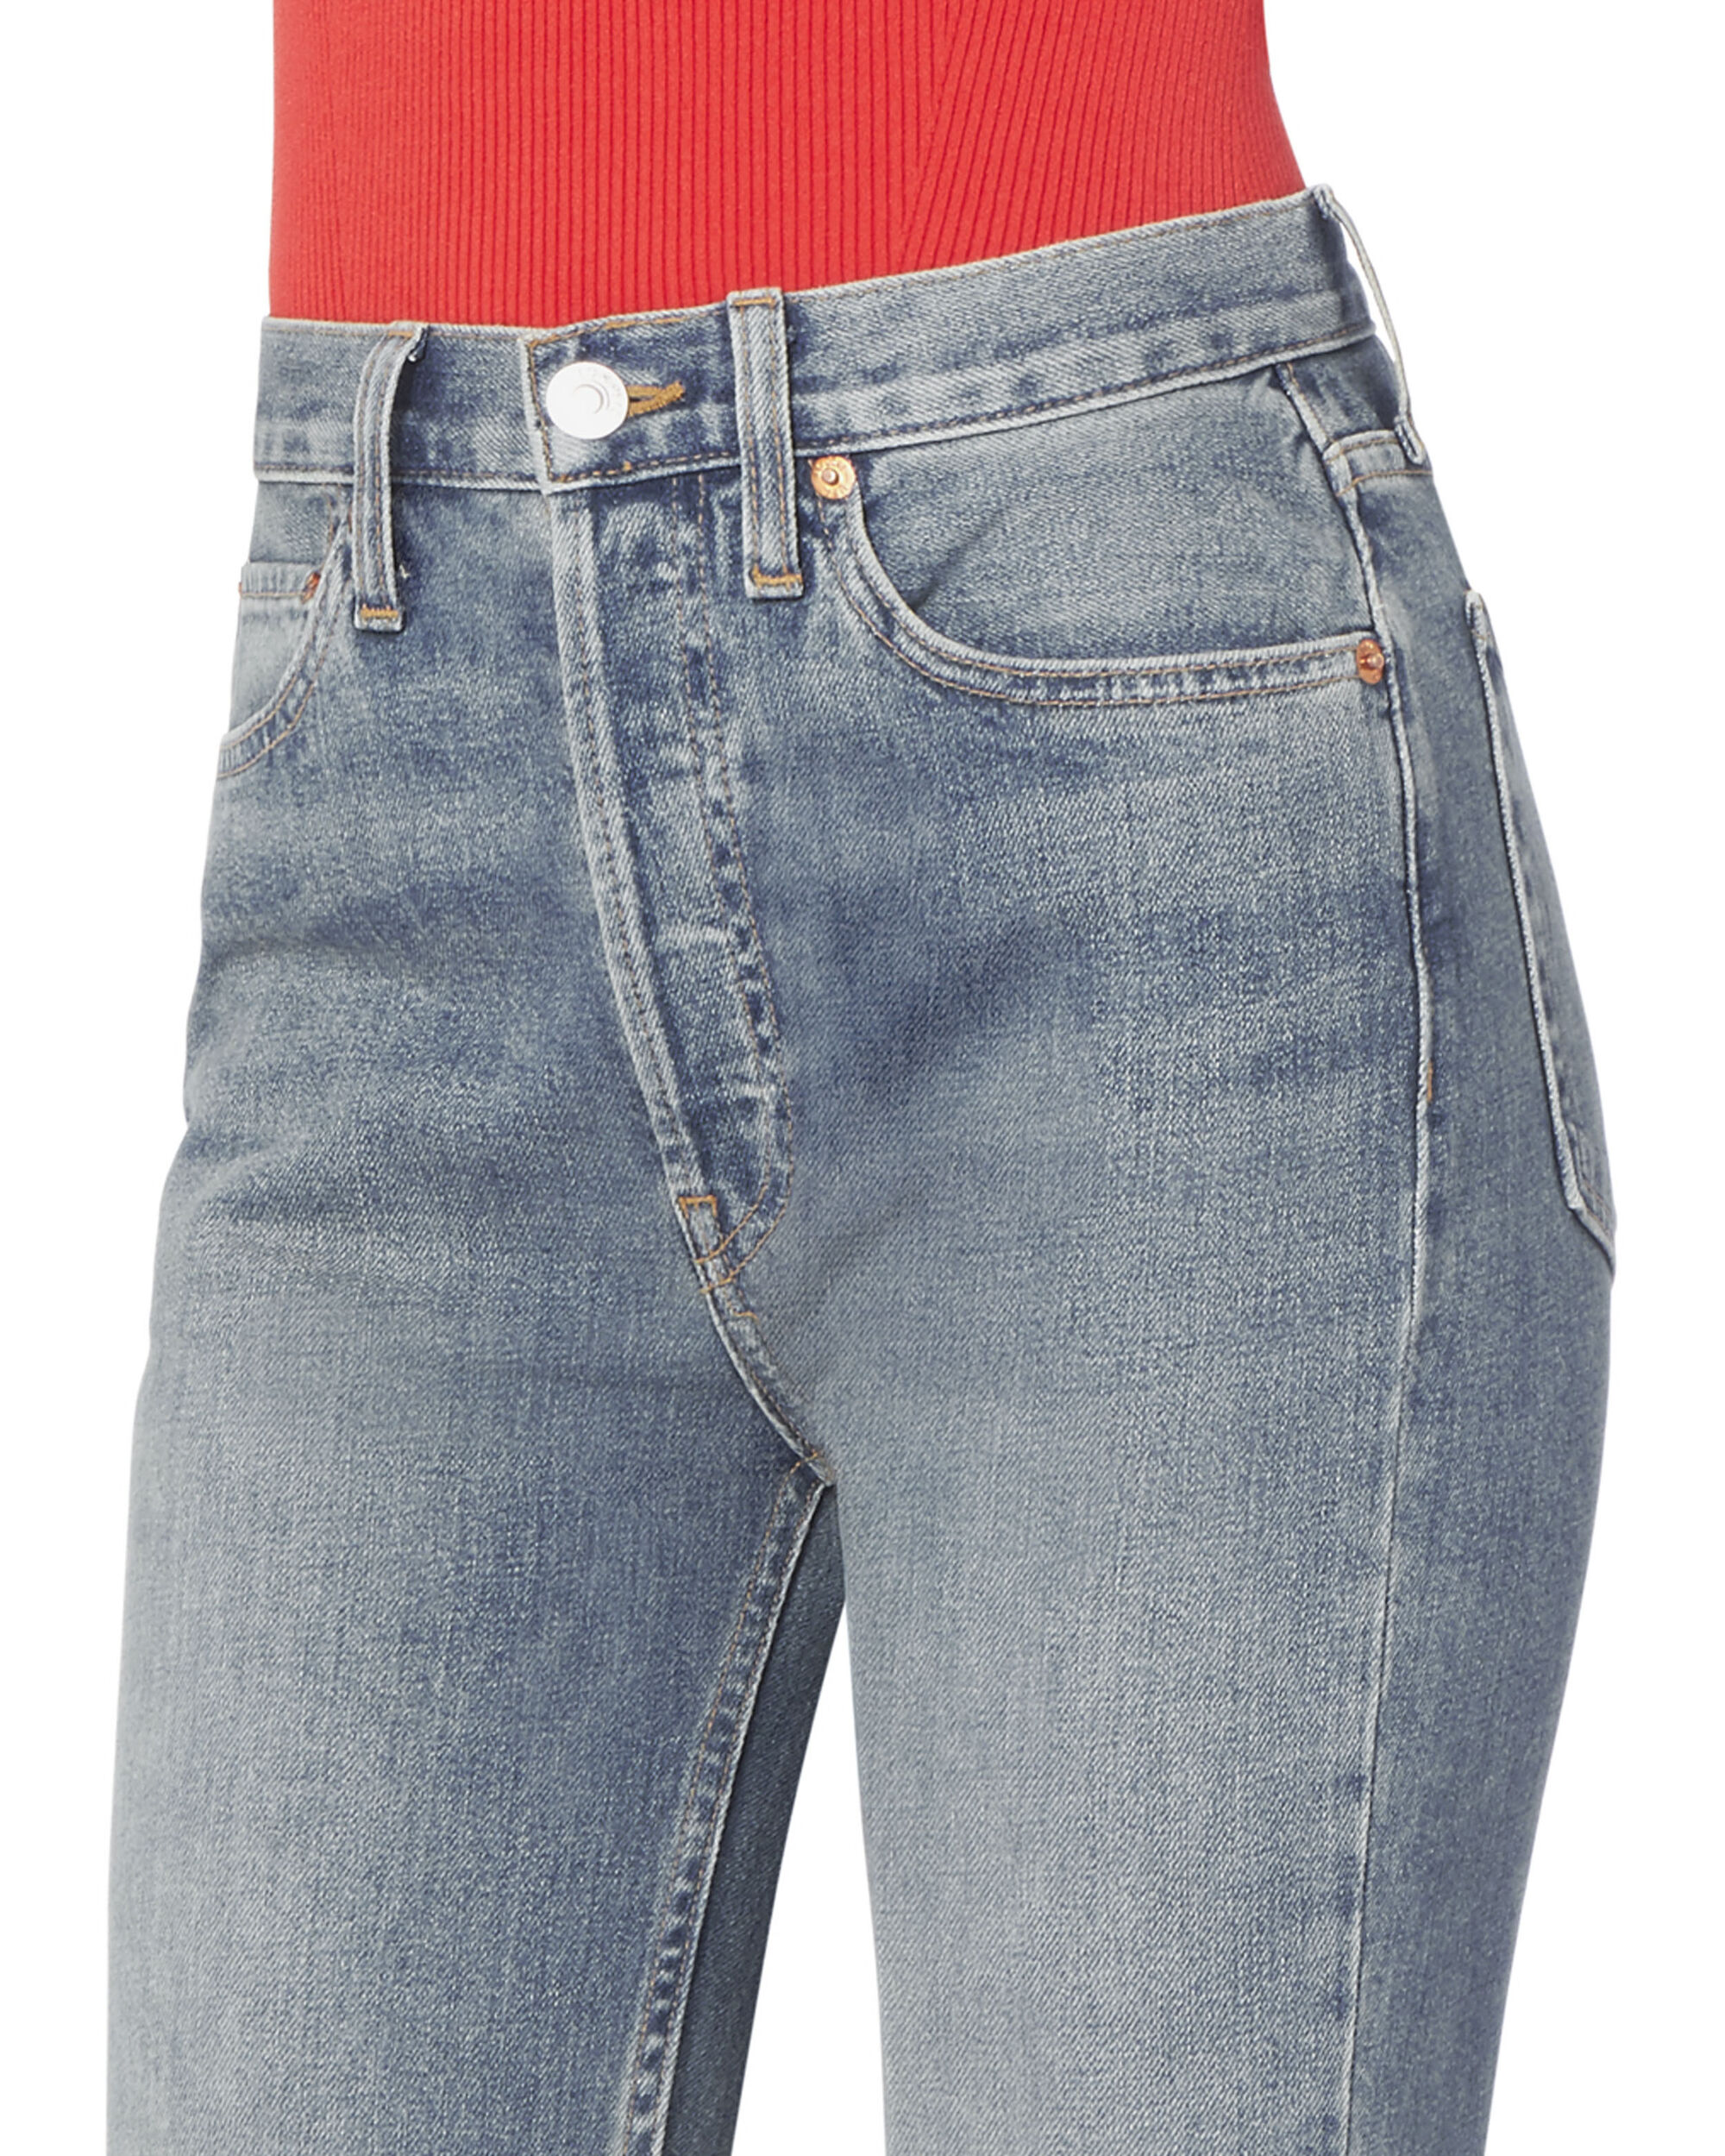 High-Rise Ankle Crop Medium Wash Jeans, DENIM, hi-res